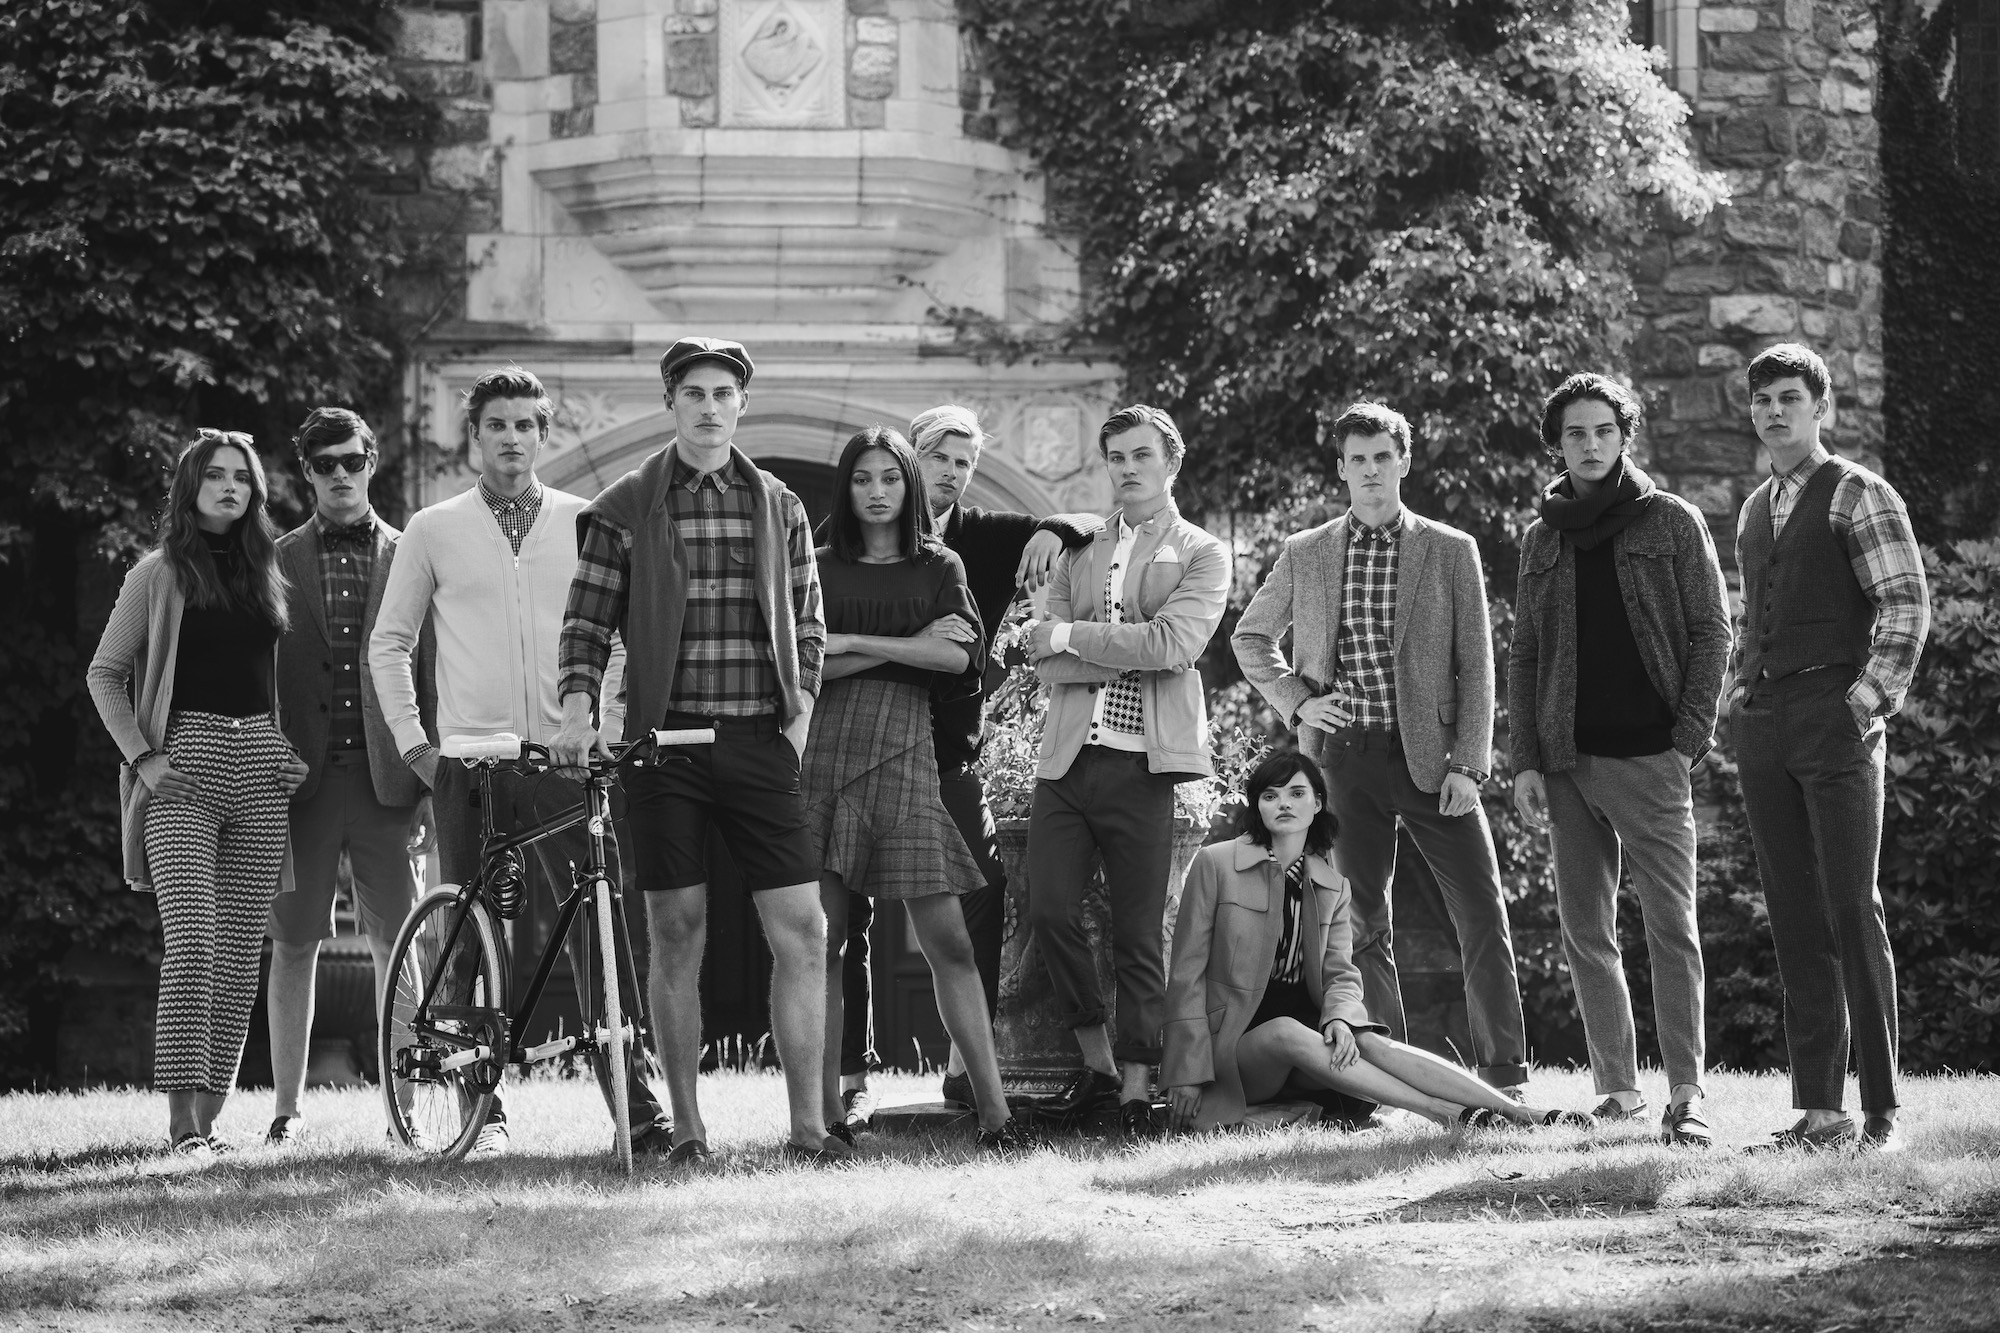 The Ivy Leaguers group